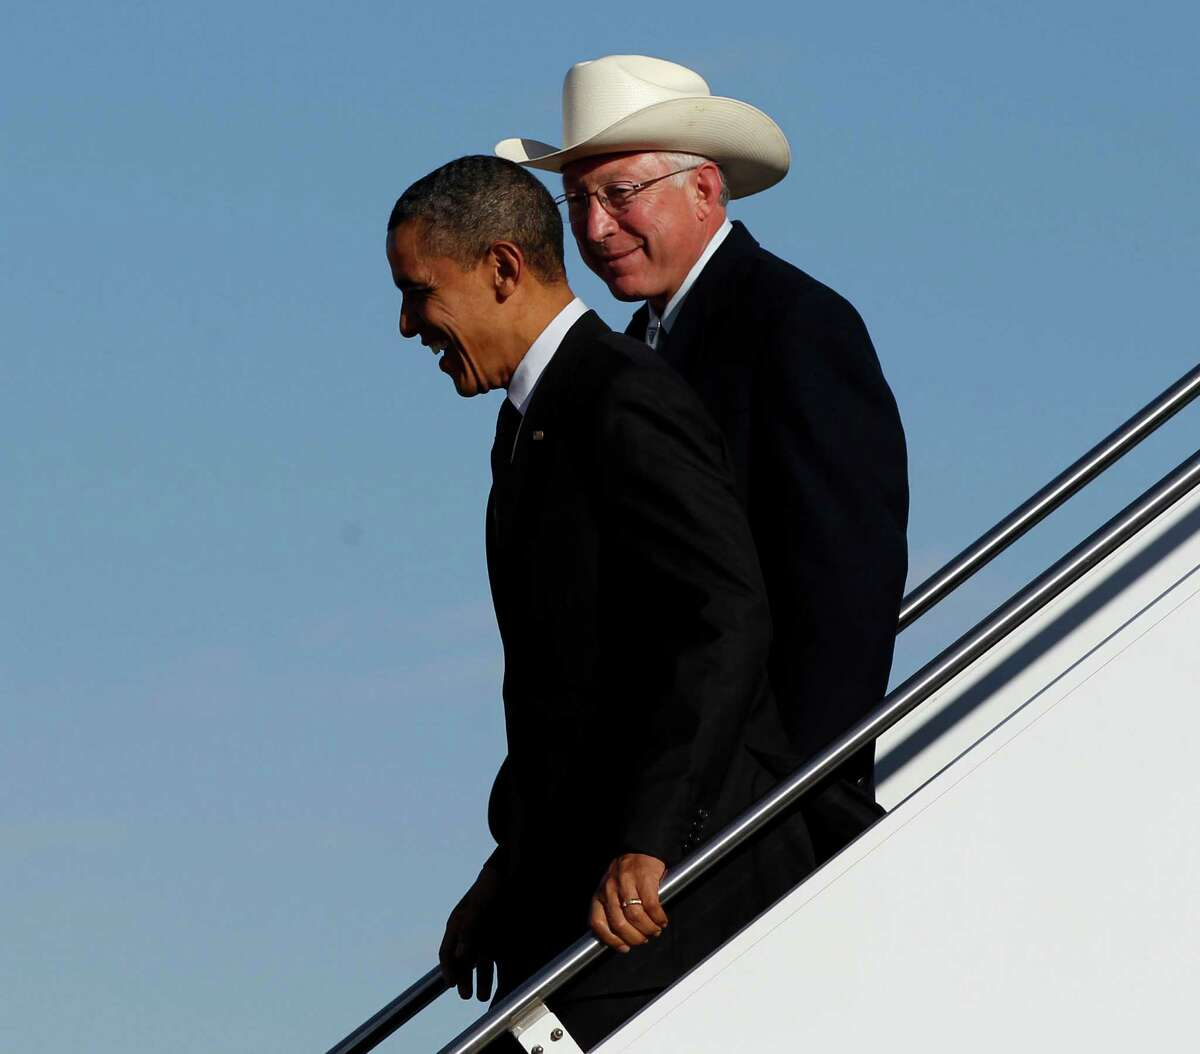 President Barack Obama, left, with Interior Secretary Ken Salazar, right, walk down the stairs during their arrival at Roswell International Air Center airport, March, 21, 2012 in Roswell, N.M.